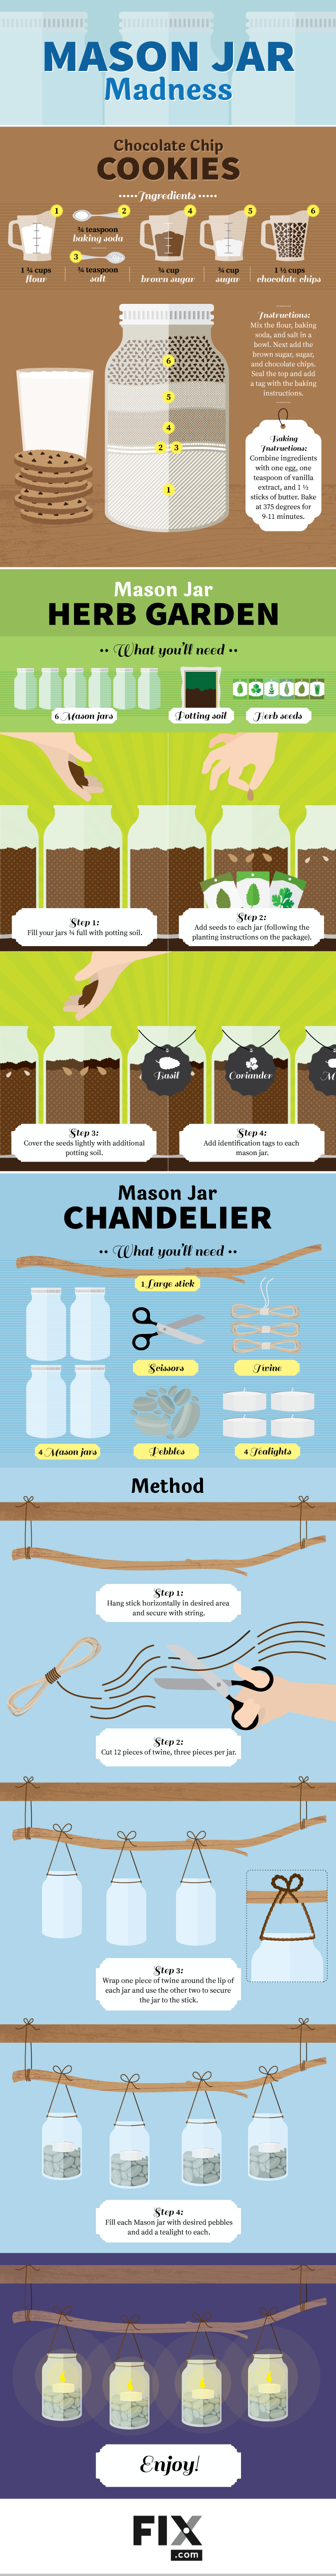 Repurposing Mason Jars [Infographic] | ecogreenlove